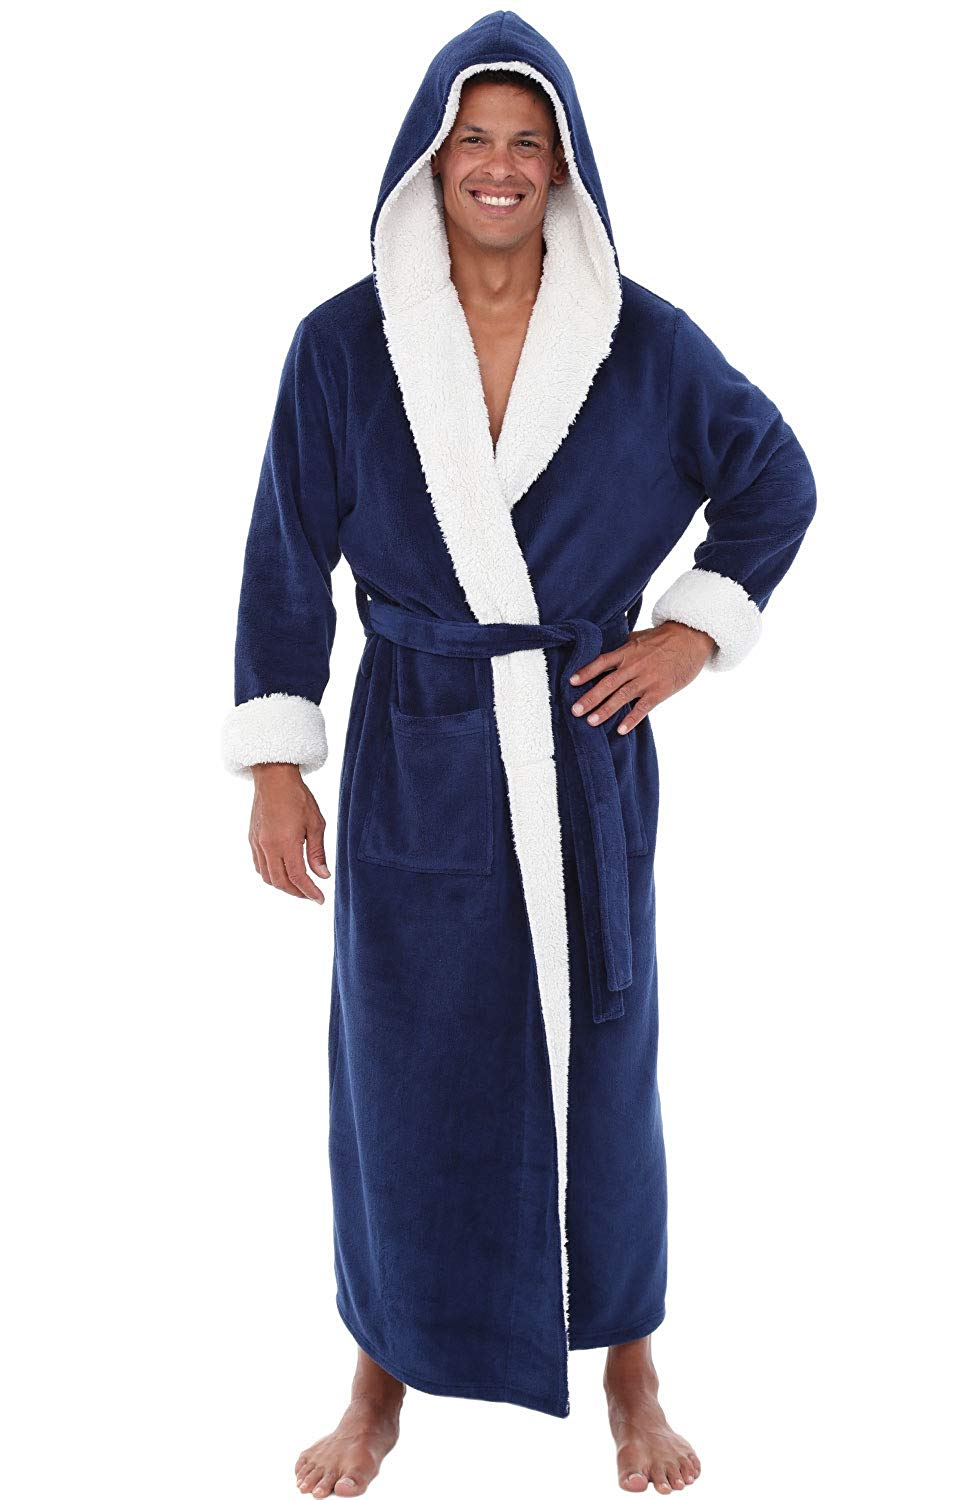 Kimono Bathrobe Gown Sleepwear Velvet New Soft Solid And Scarf Collar Comfortable Loose